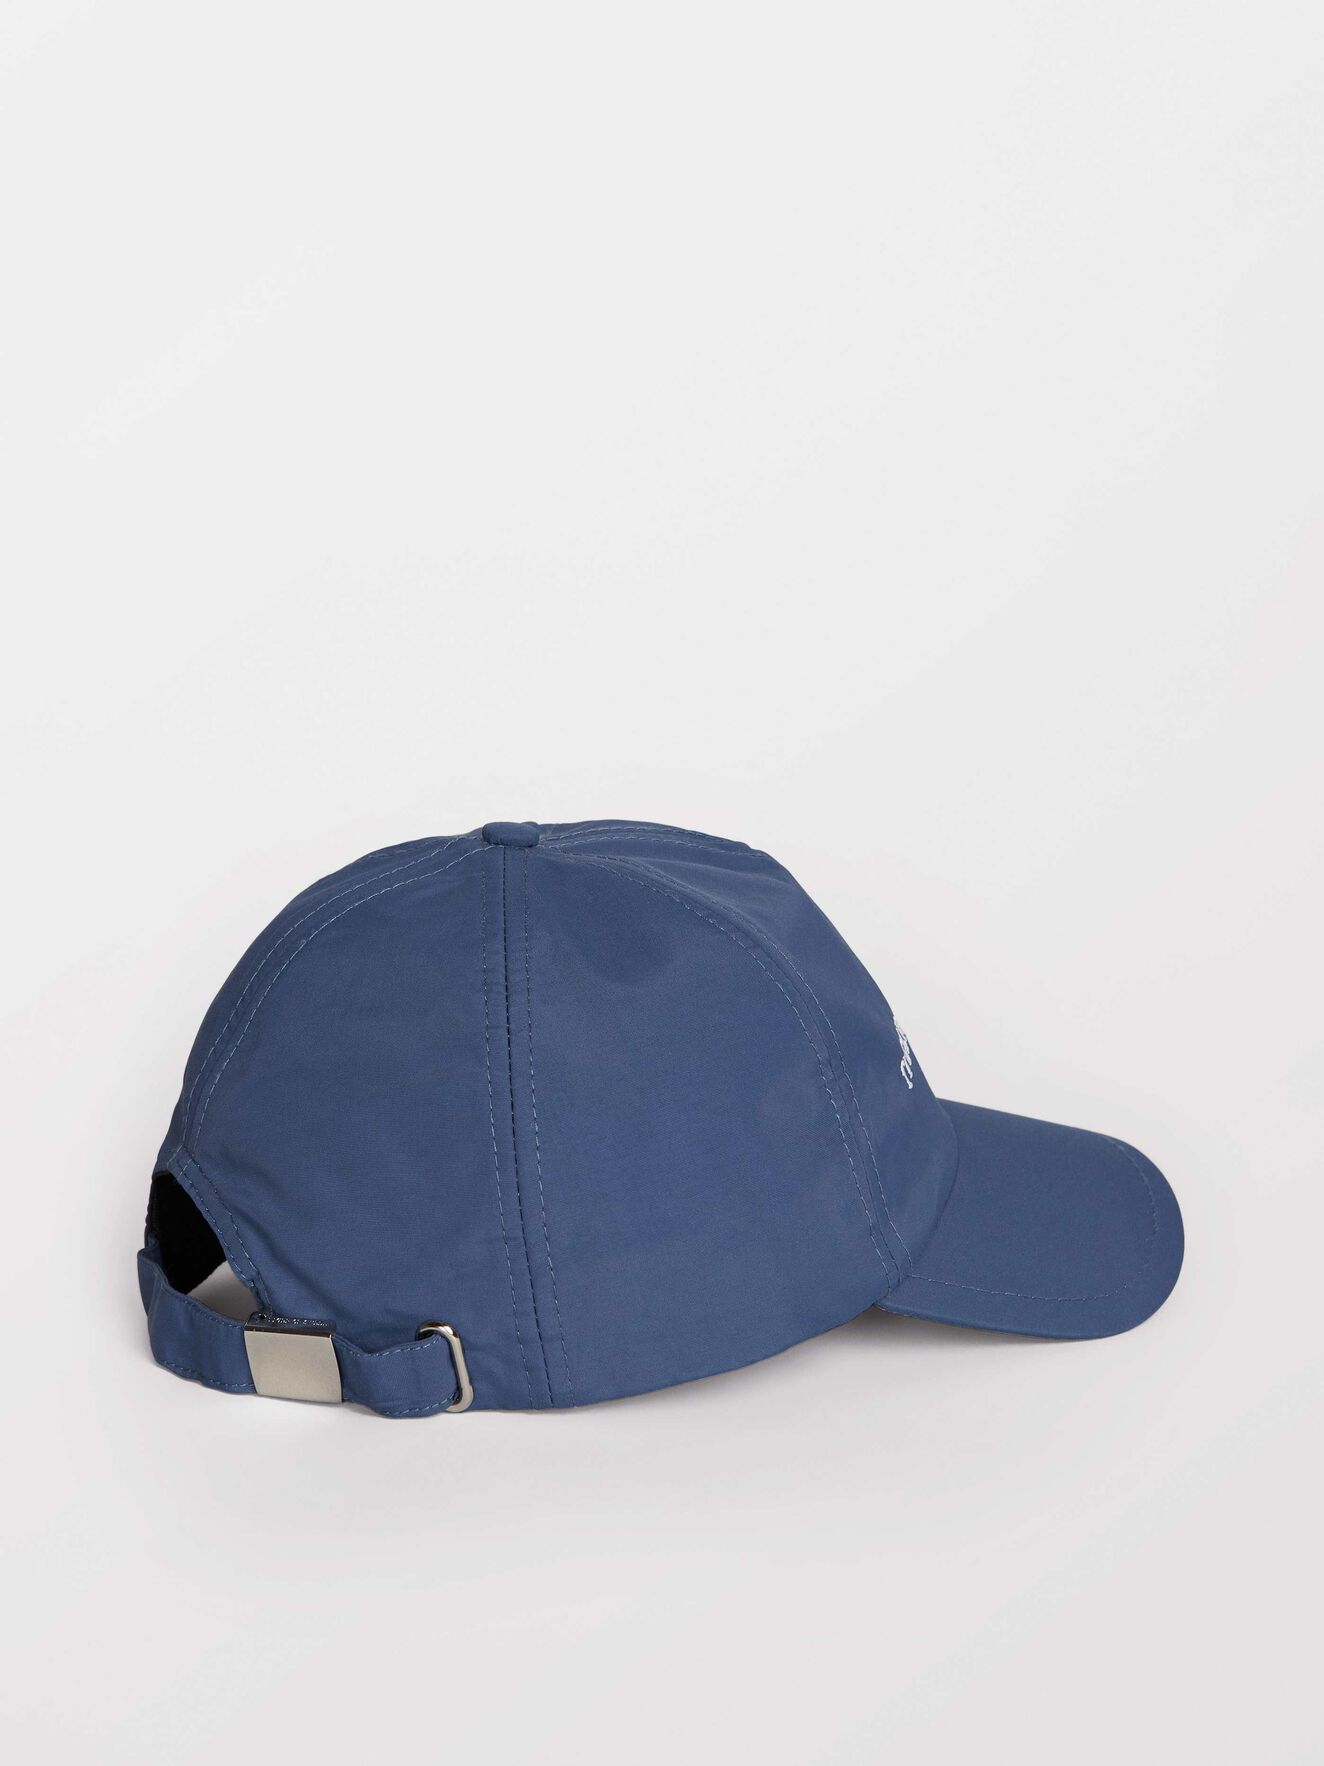 Hinsdal 2 Cap in Purple Blue from Tiger of Sweden